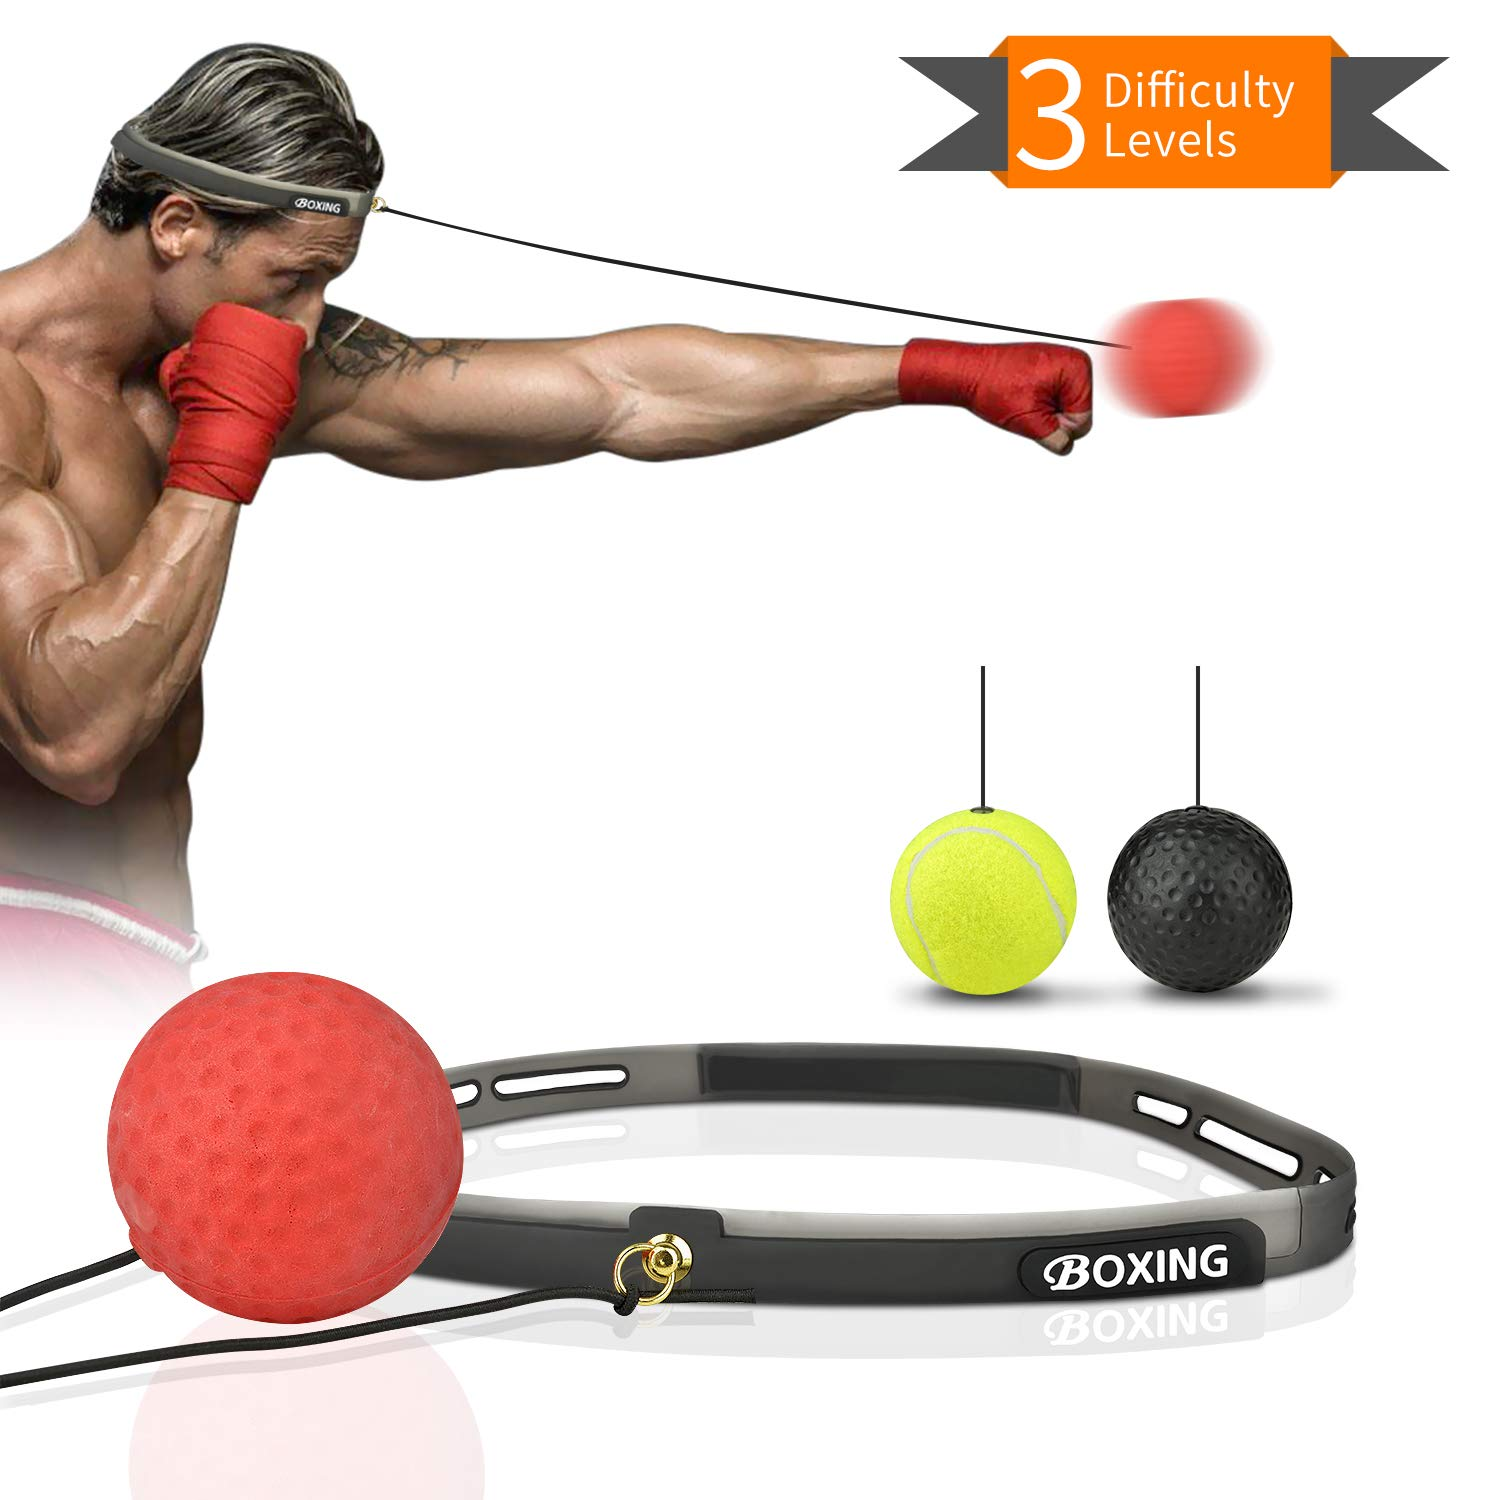 Boxing Reflex Ball Set Great For Beginner to Advanced!